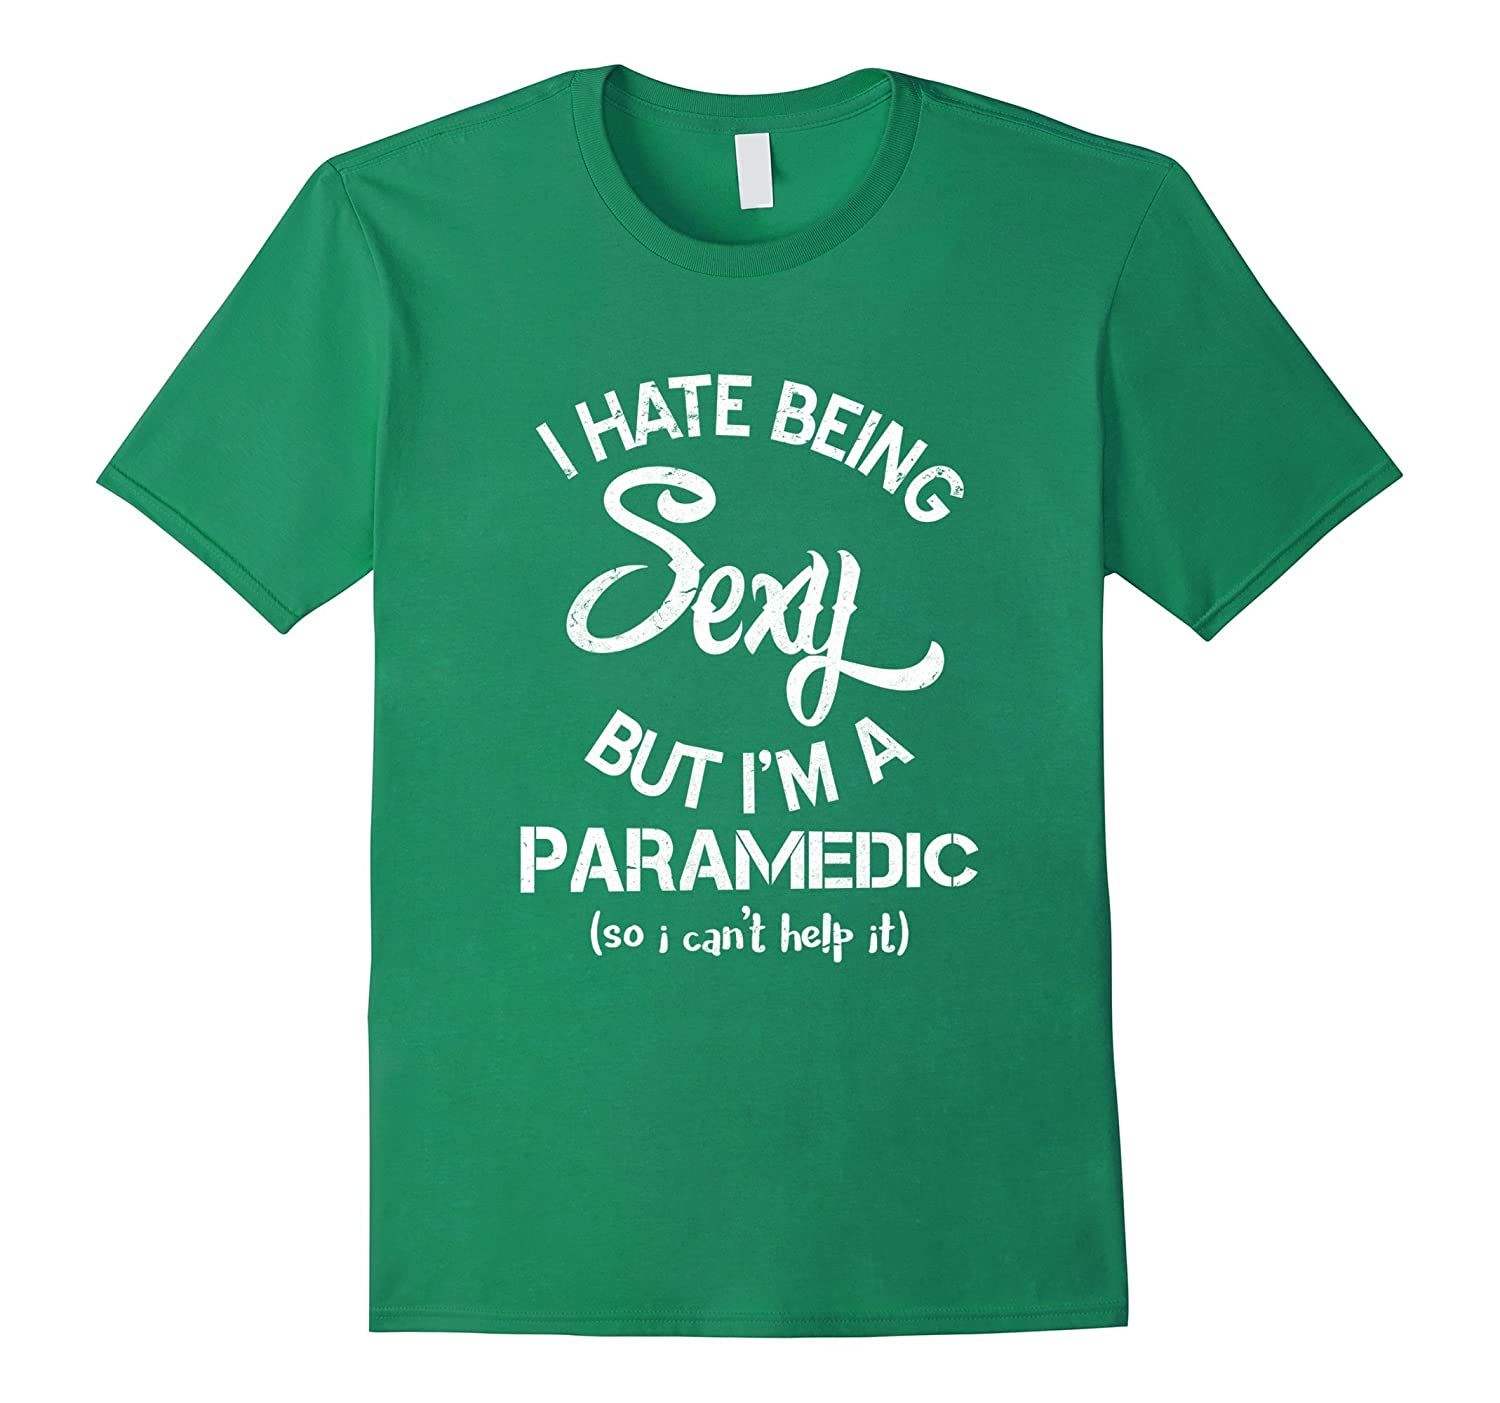 7921697c0 I Hate Being Sexy But Im A Paramedic T-Shirt Funny Gift EMT-TH ...